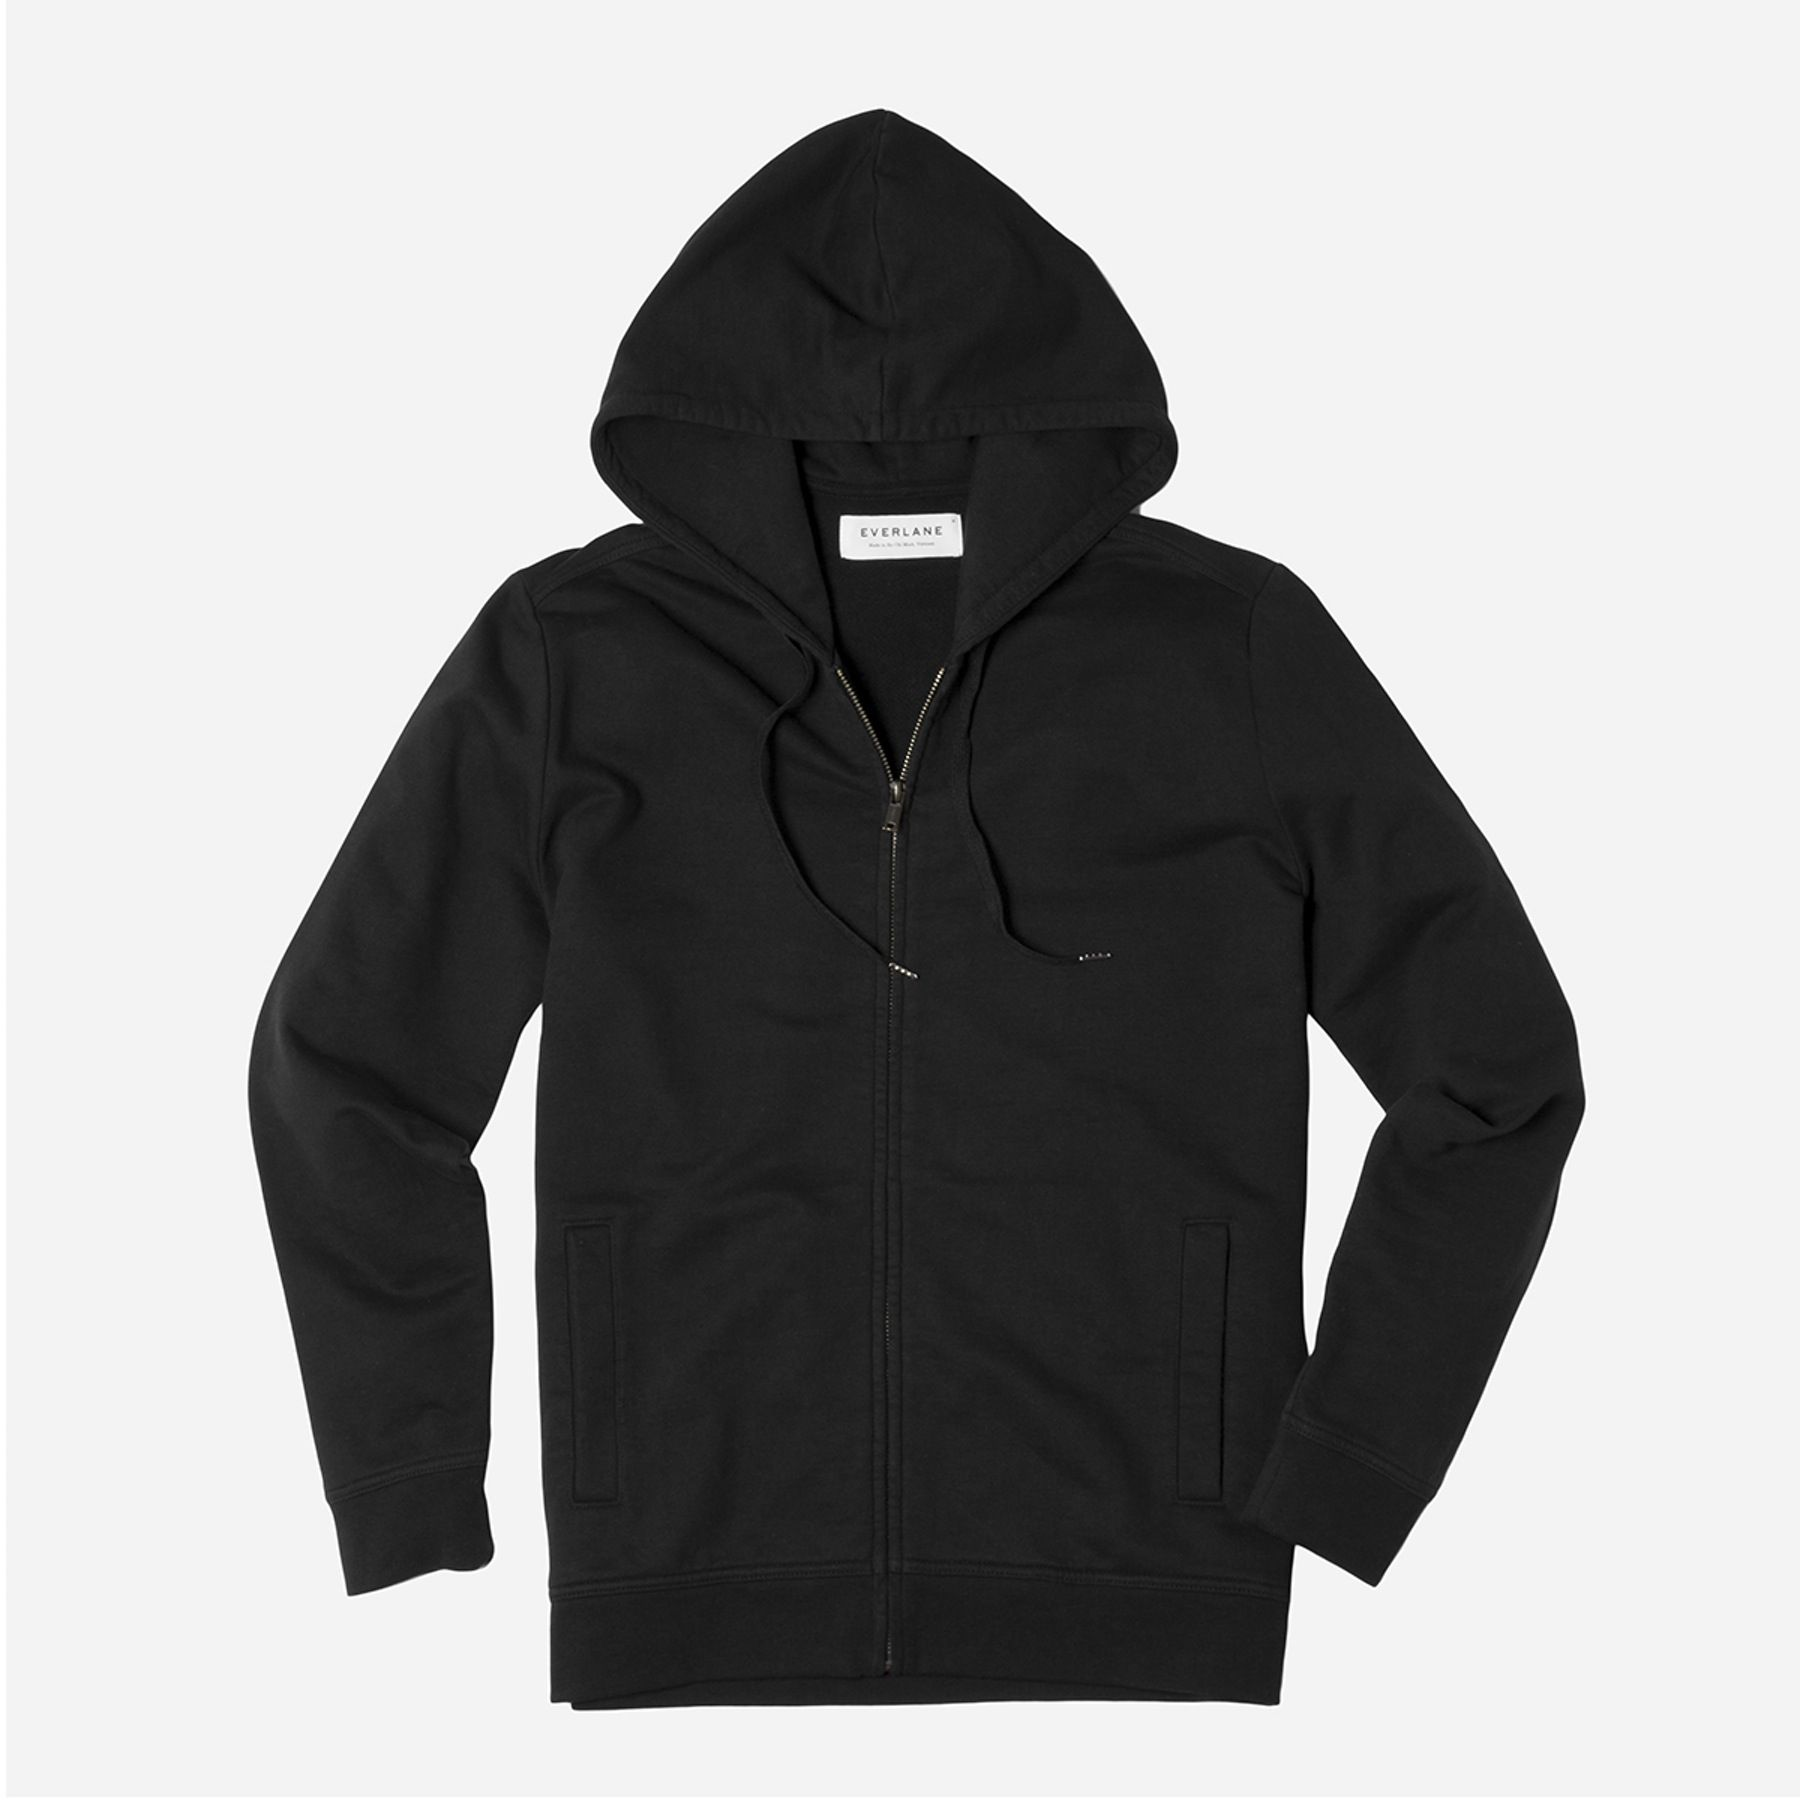 The iconic zip hoodie in a modern, upgraded fabric Regular fit Features classic set-in sleeves, lined hood, and topstitch seam…